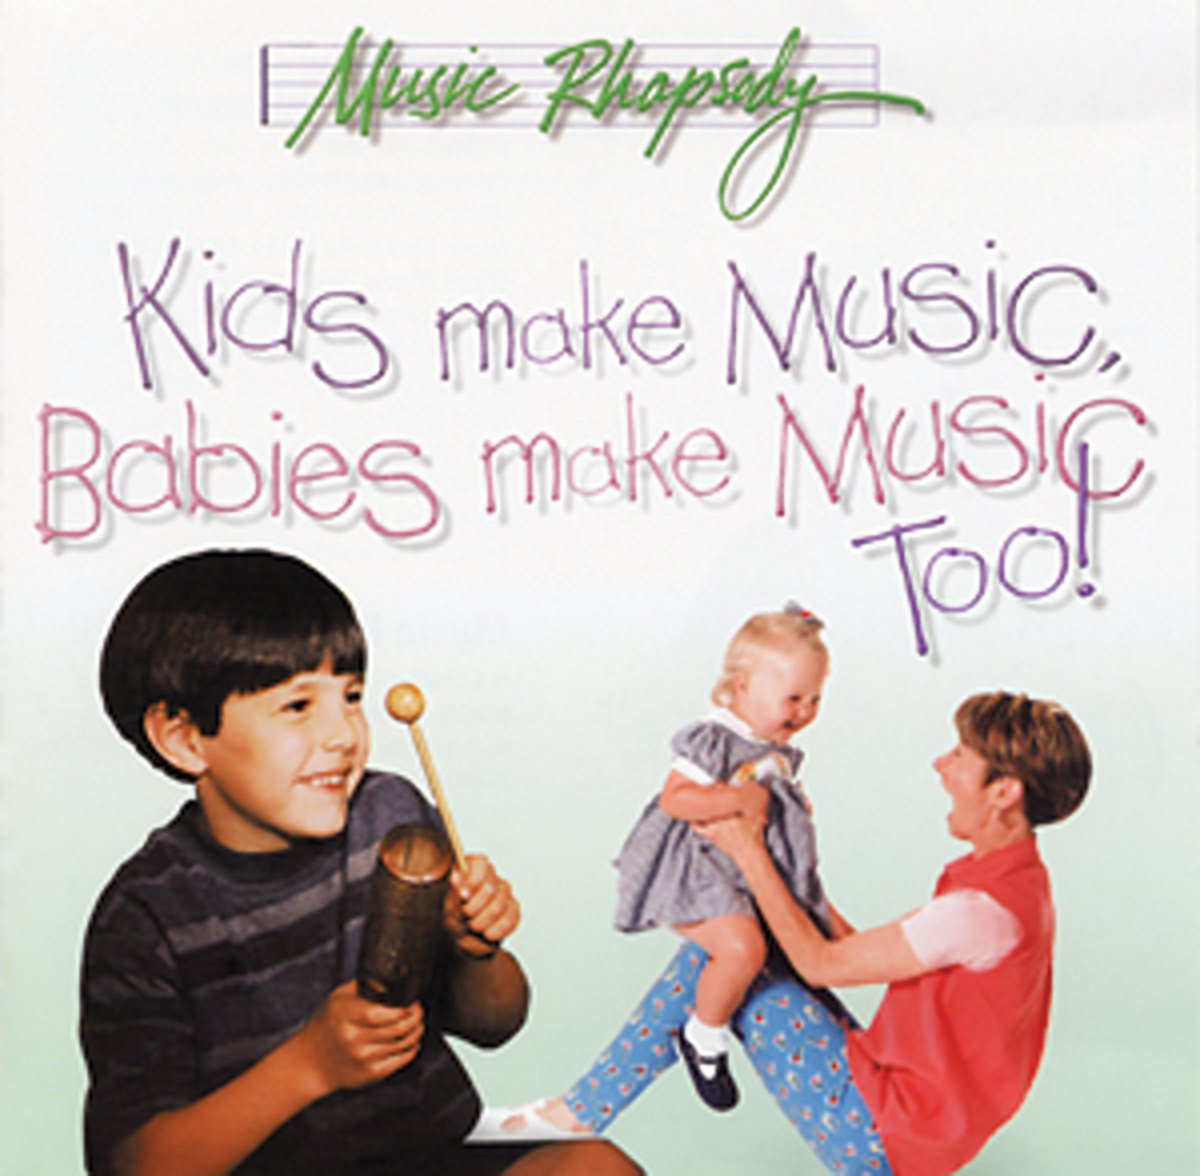 Kids Make Music, Babies Make Music Too! (Music Rhapsody)